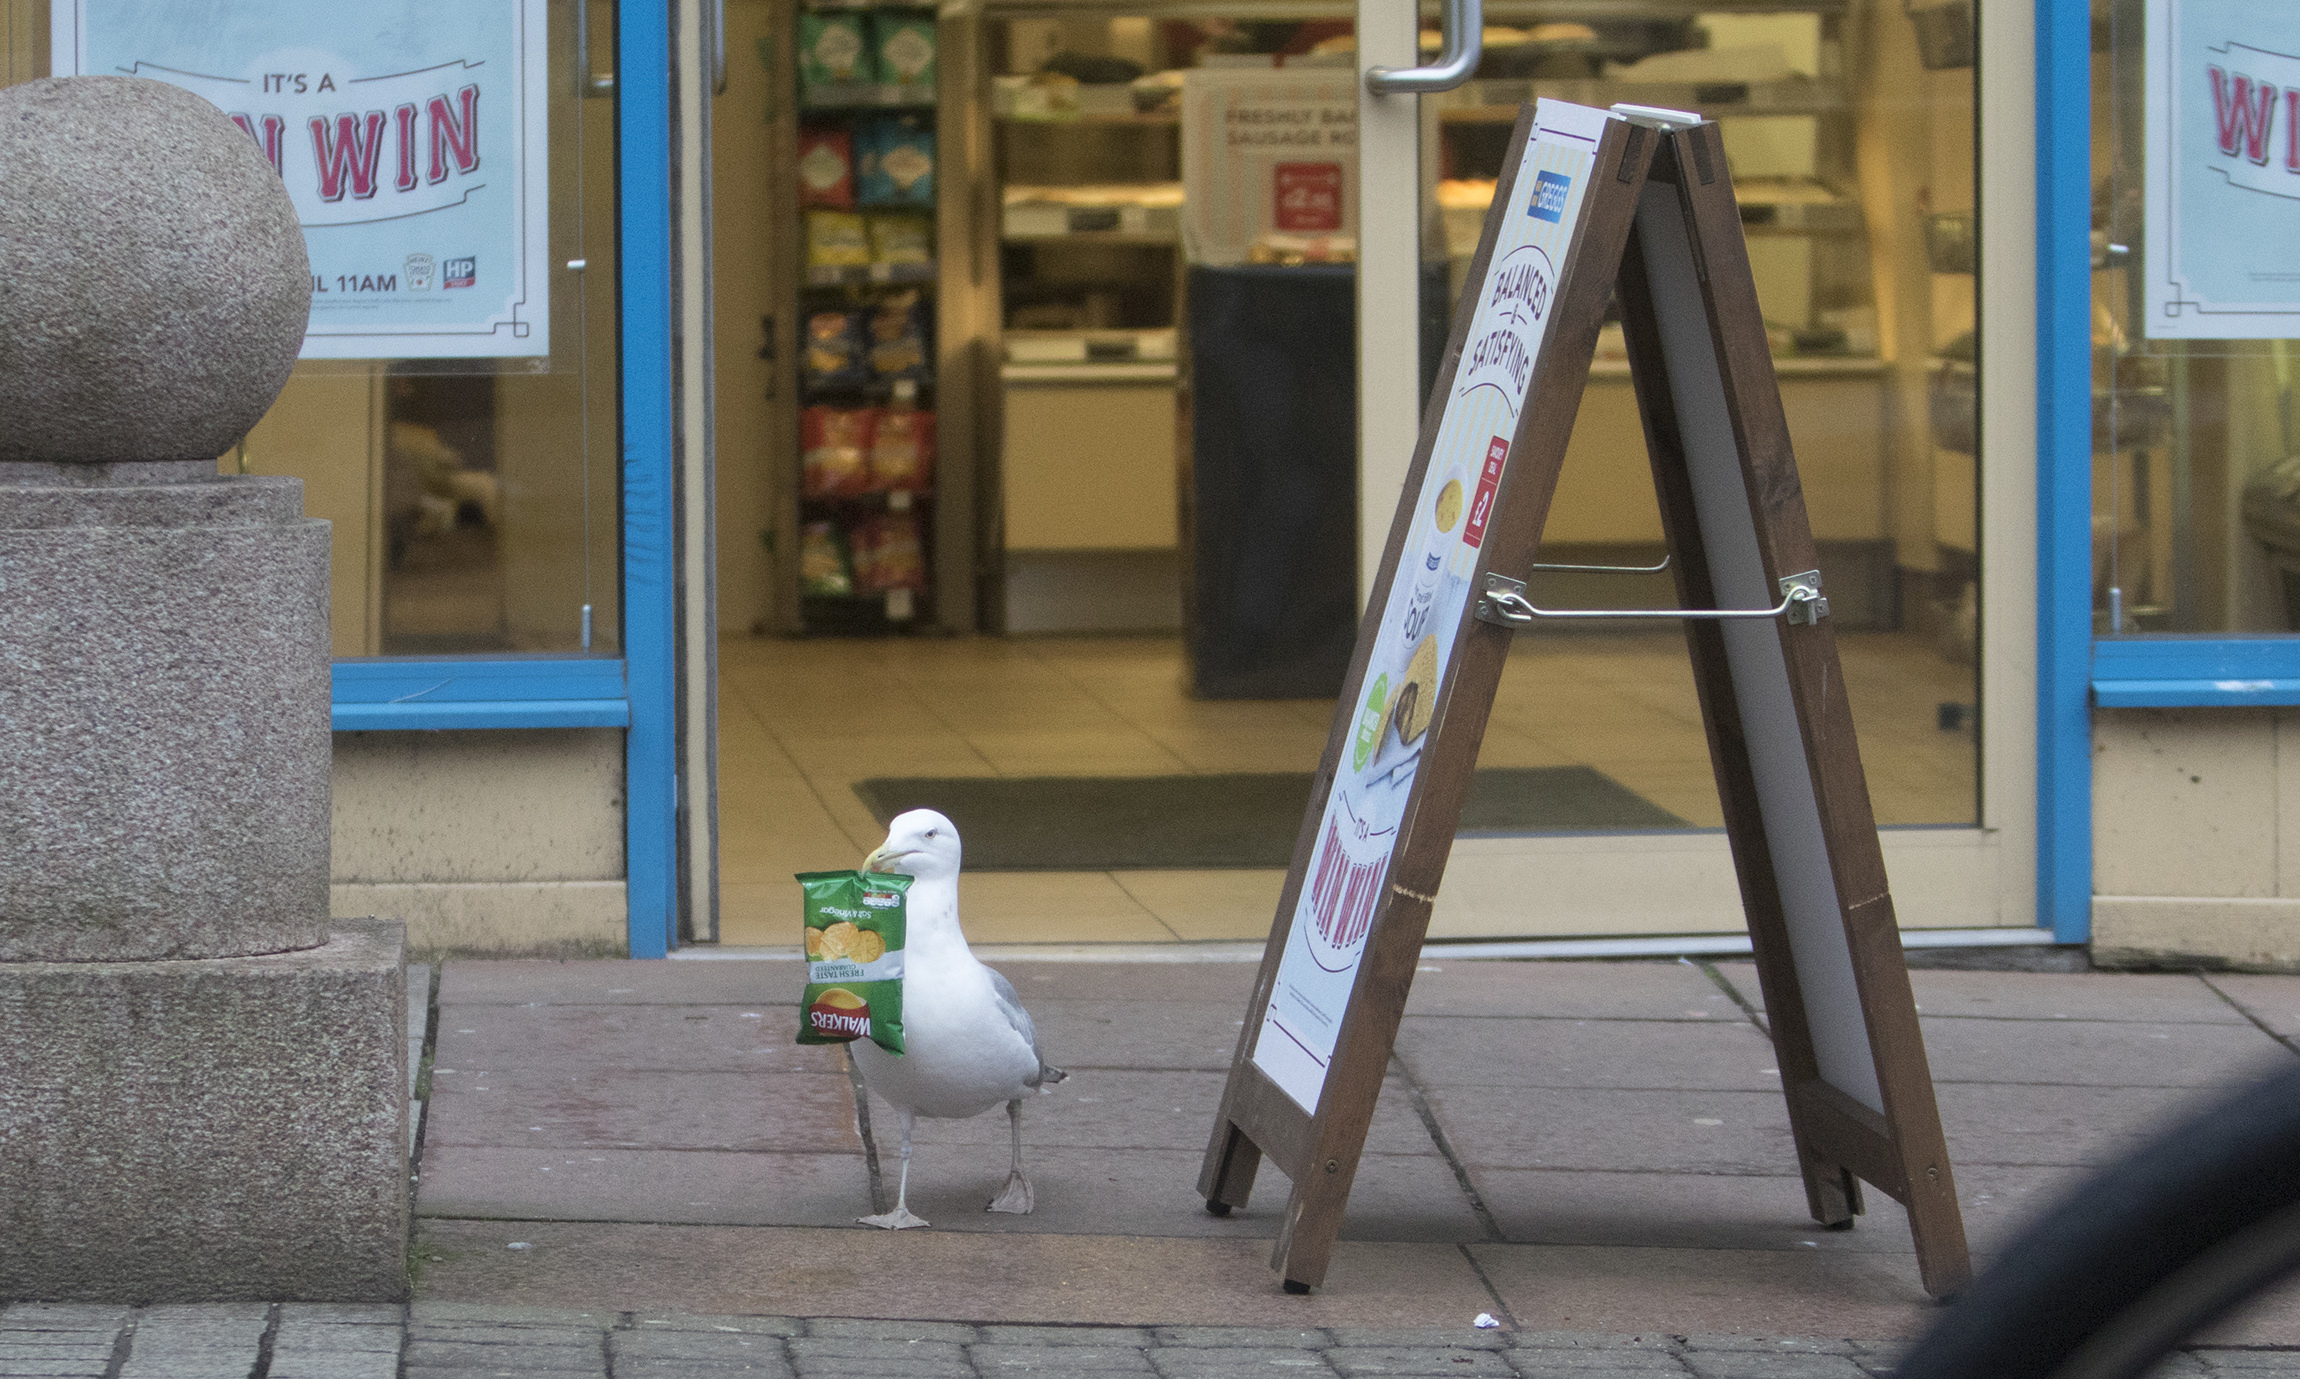 Steven Seagull bags another bag of salt and vinegar